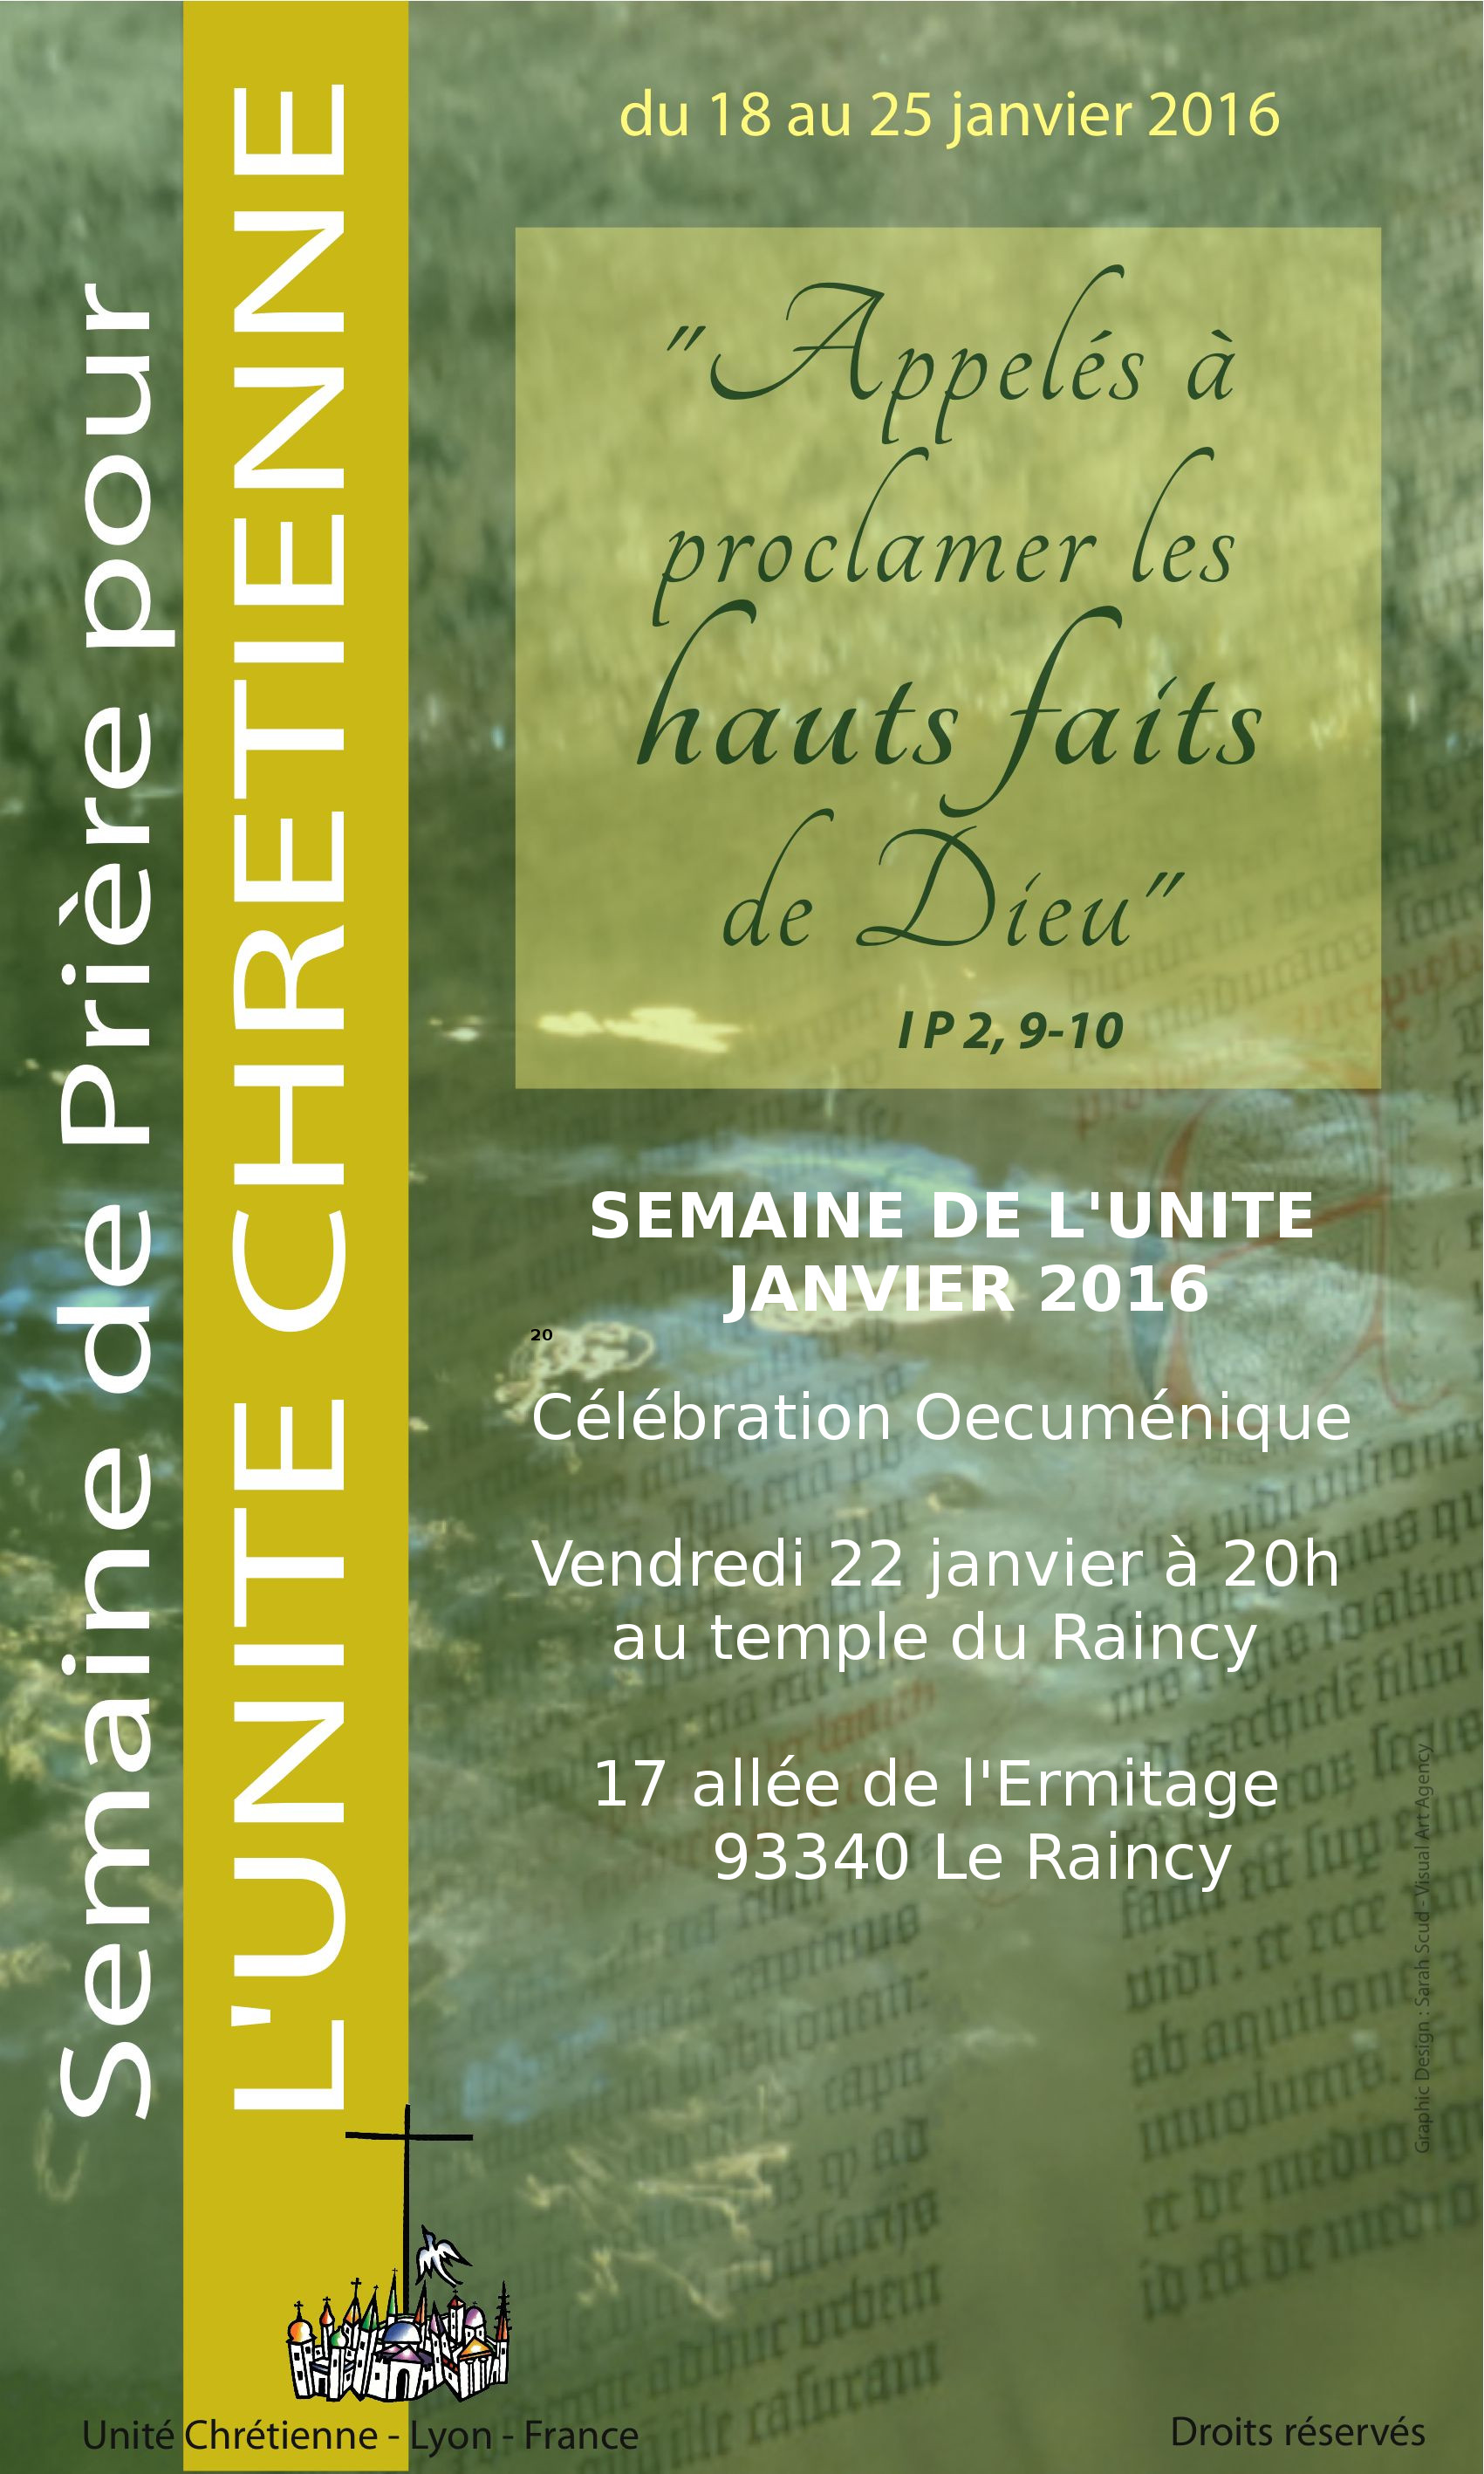 AfficheCelebrationOecumenique